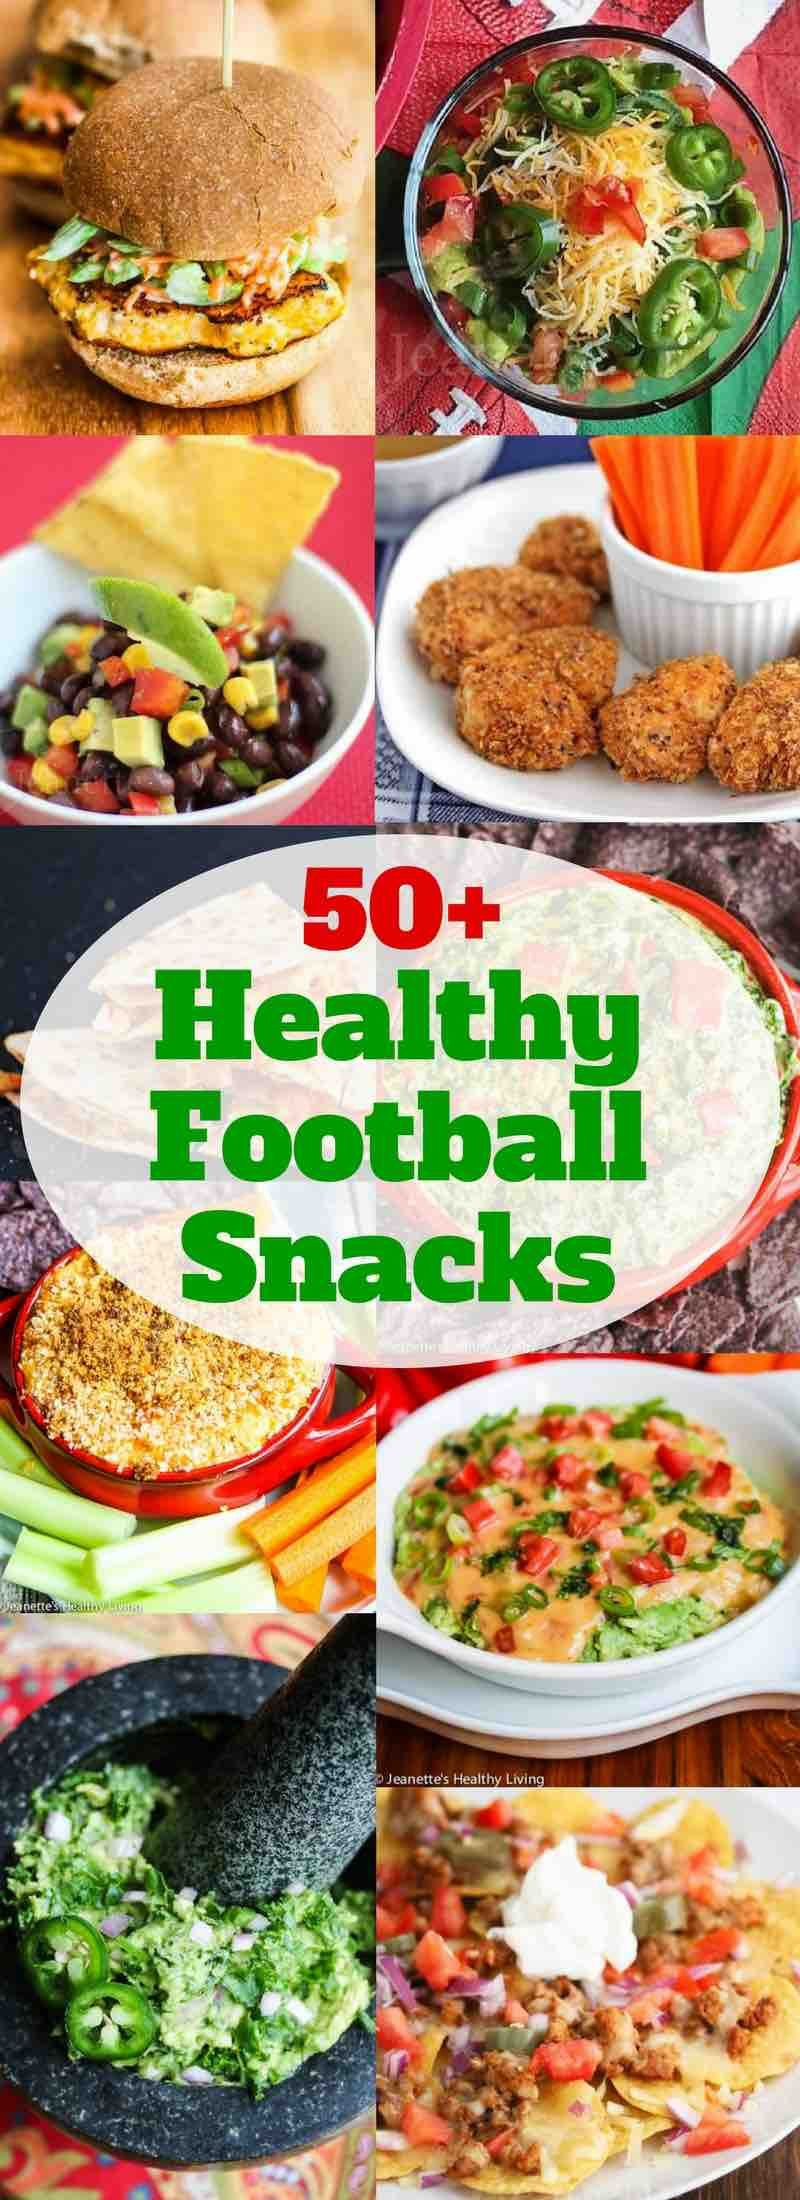 Healthy Football Appetizers  50 Healthy Football Snacks